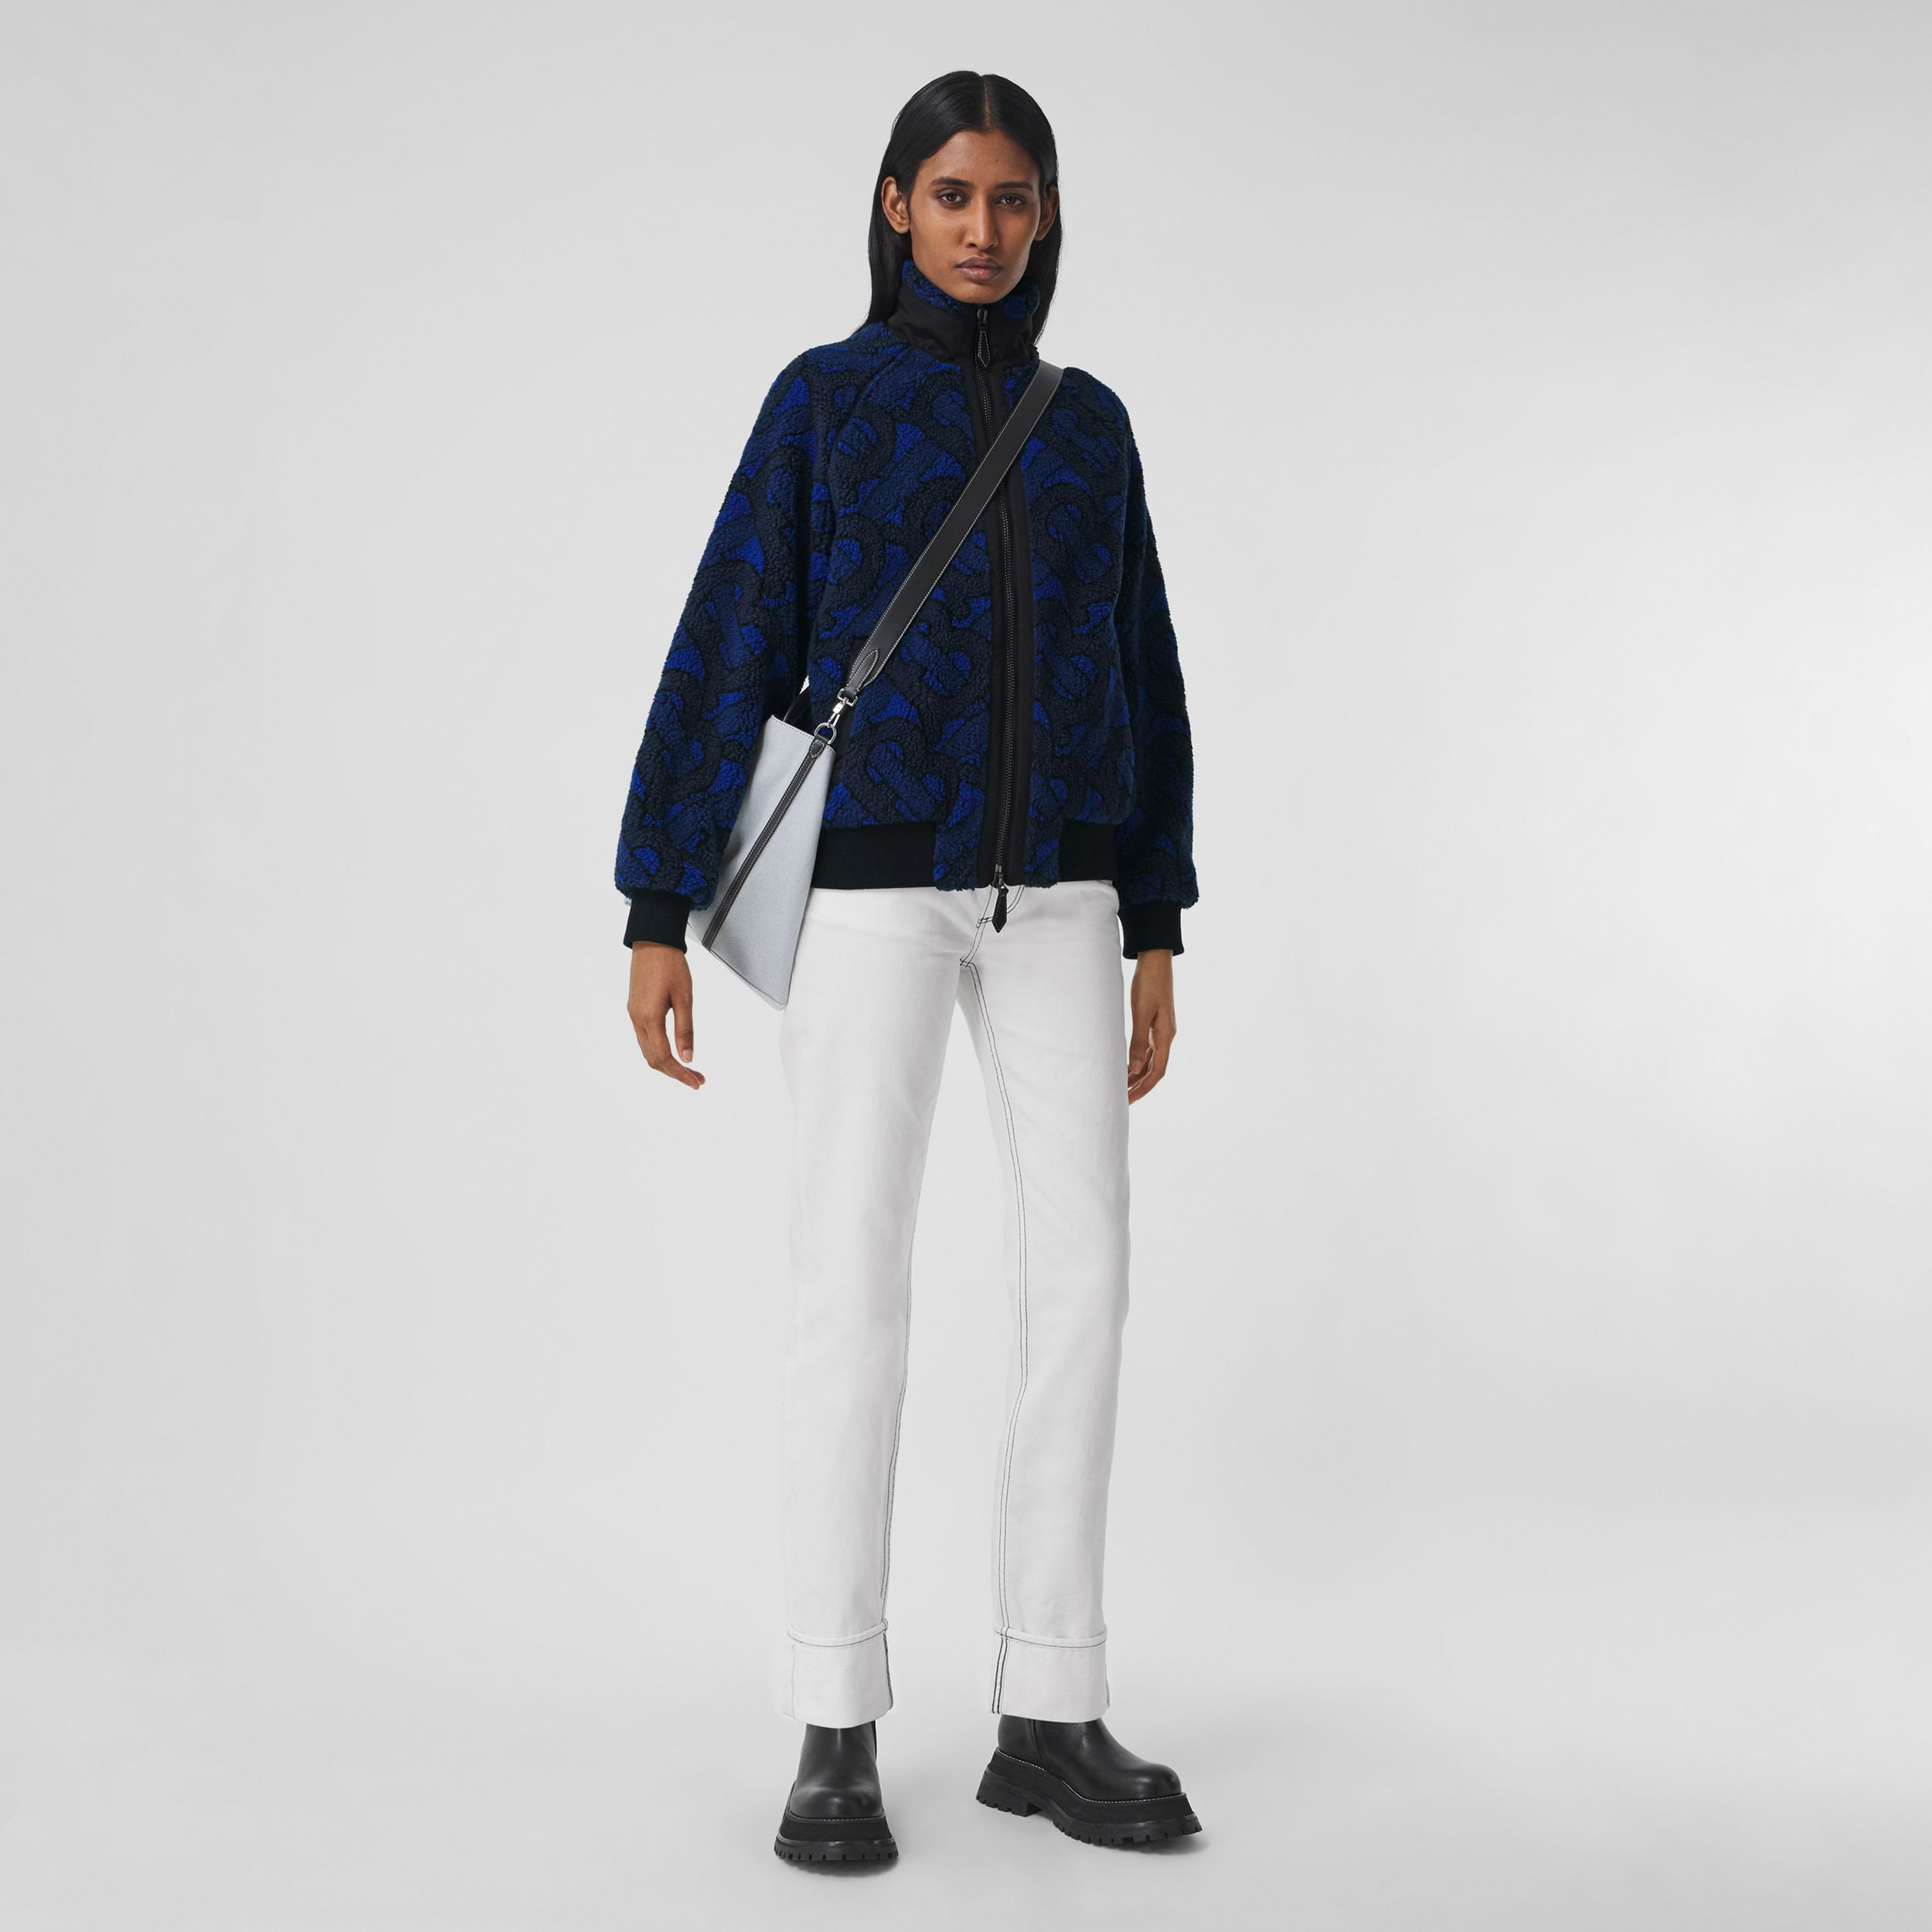 Monogram Fleece Jacquard Jacket in Navy - Women | Burberry - 1